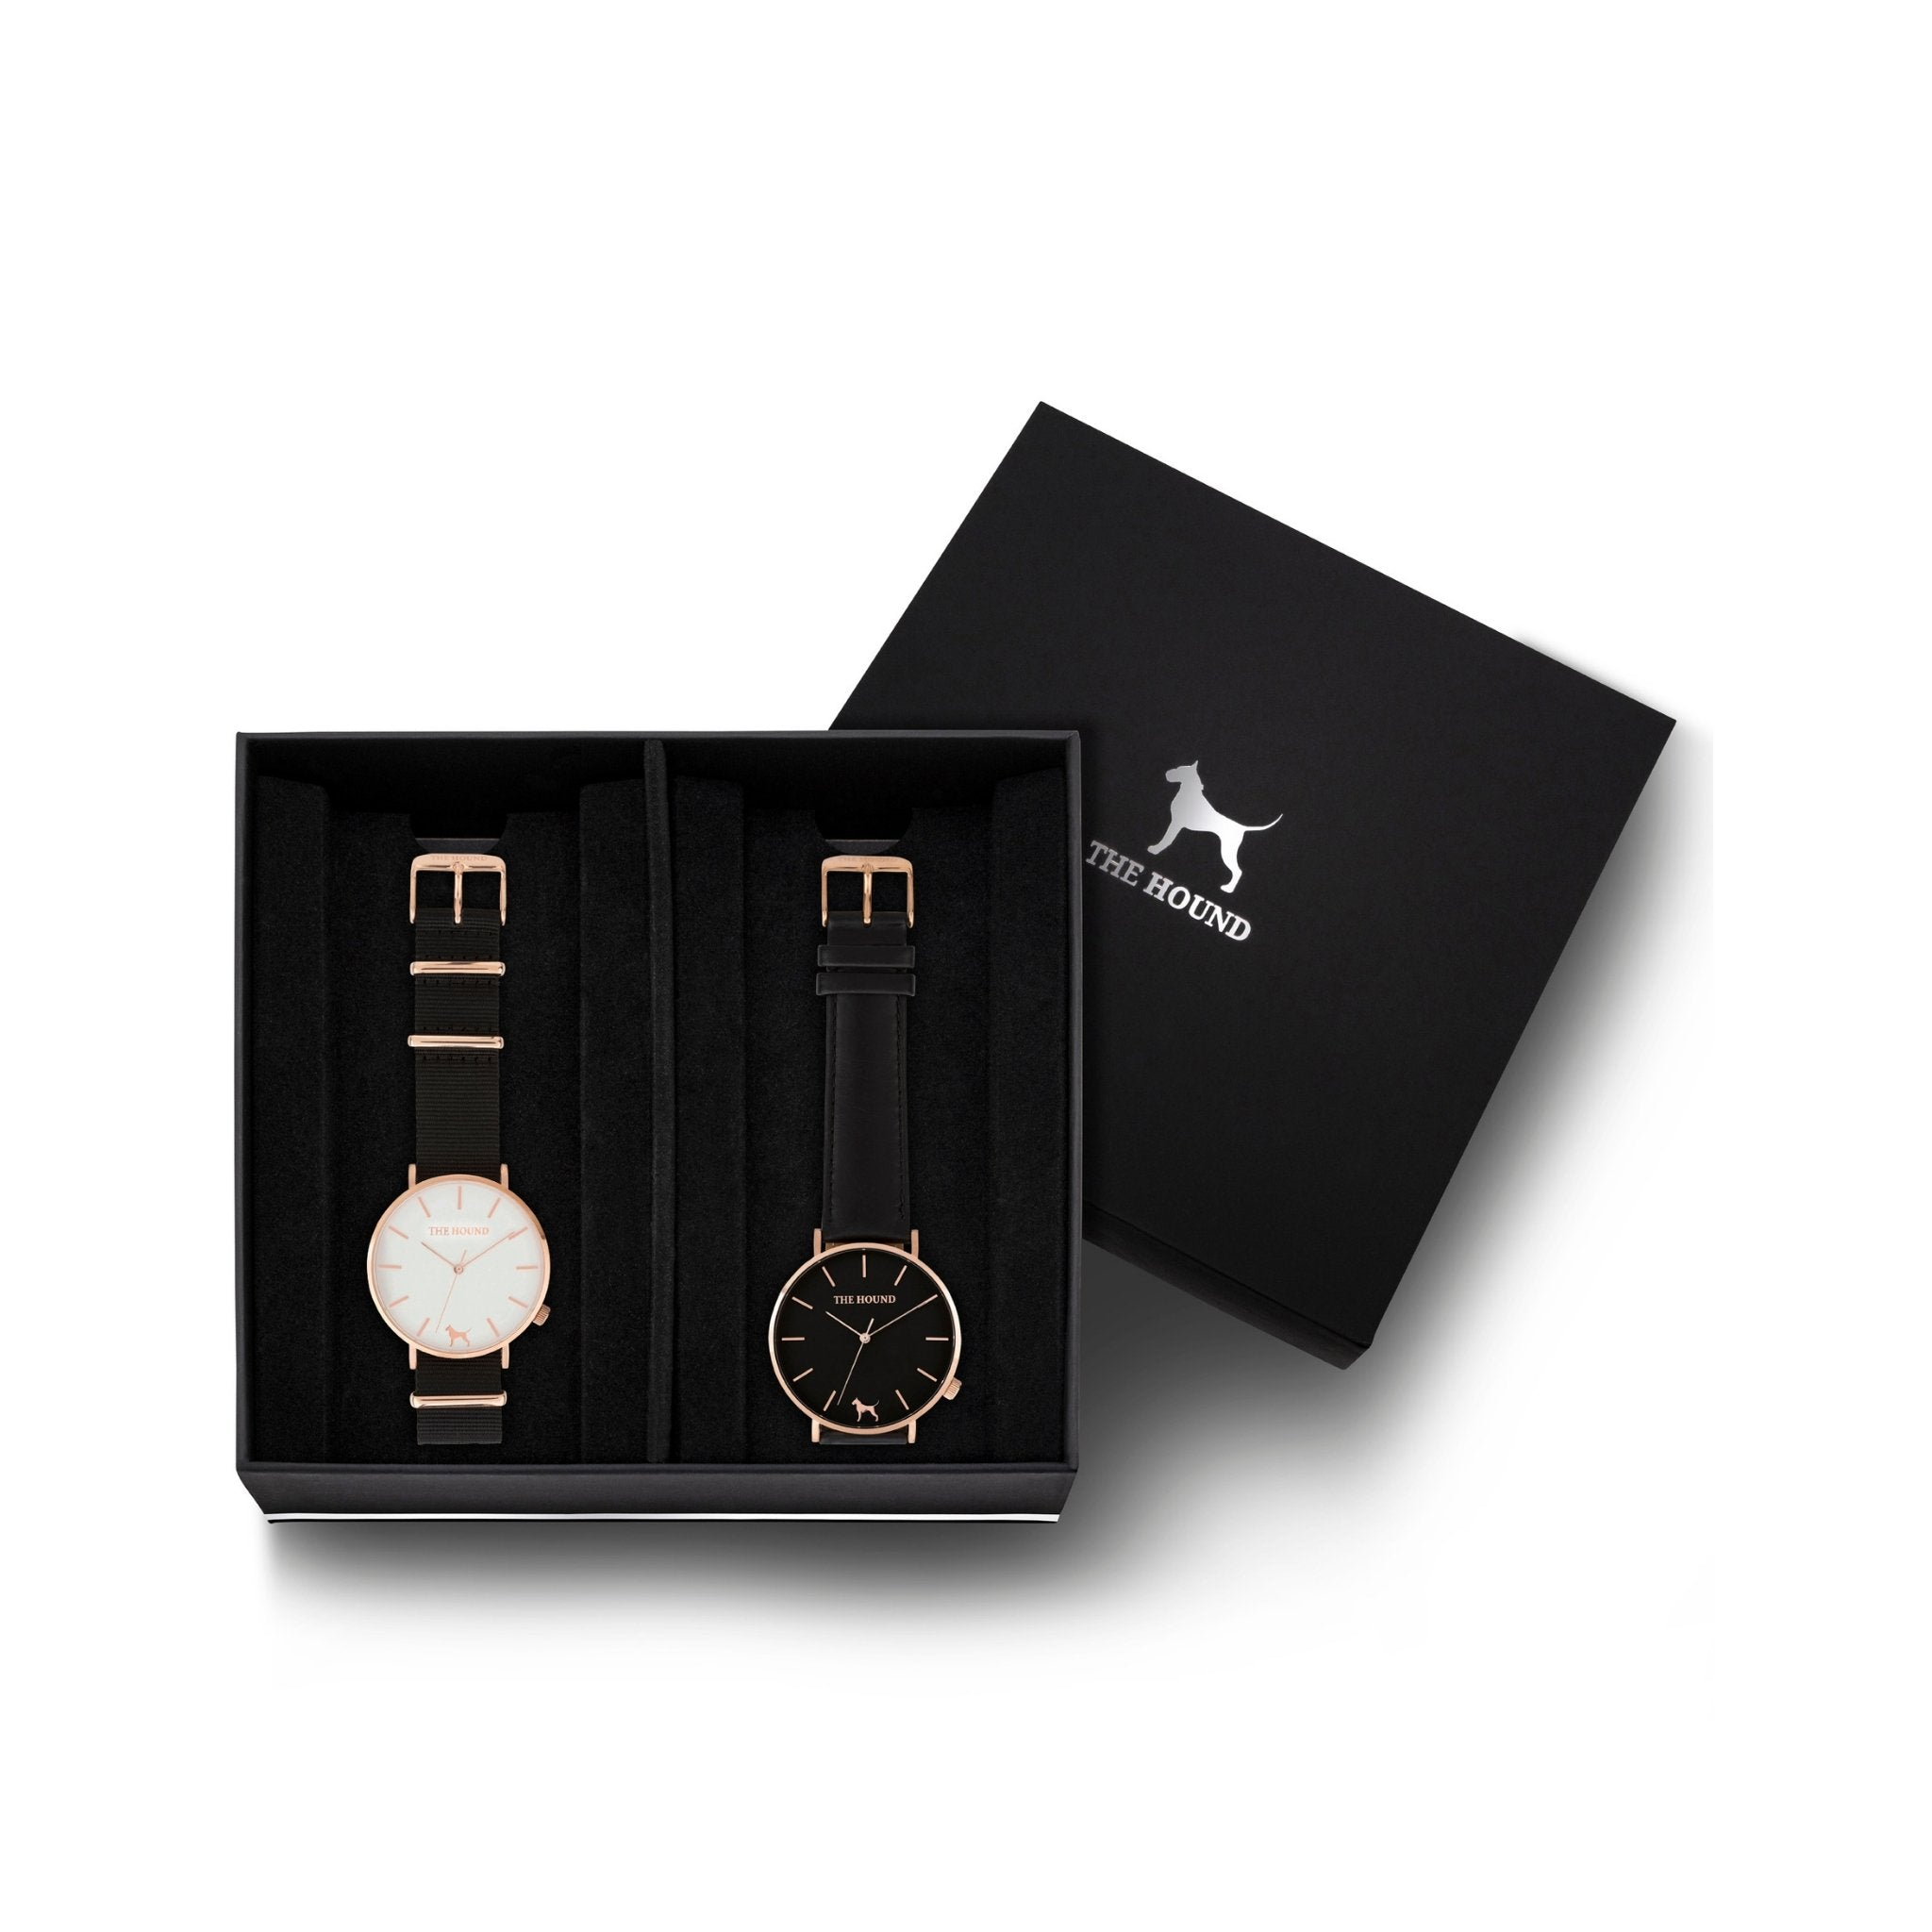 Custom gift set - Rose gold and white watch with black nato band and a rose gold and black watch with stitched black genuine leather band